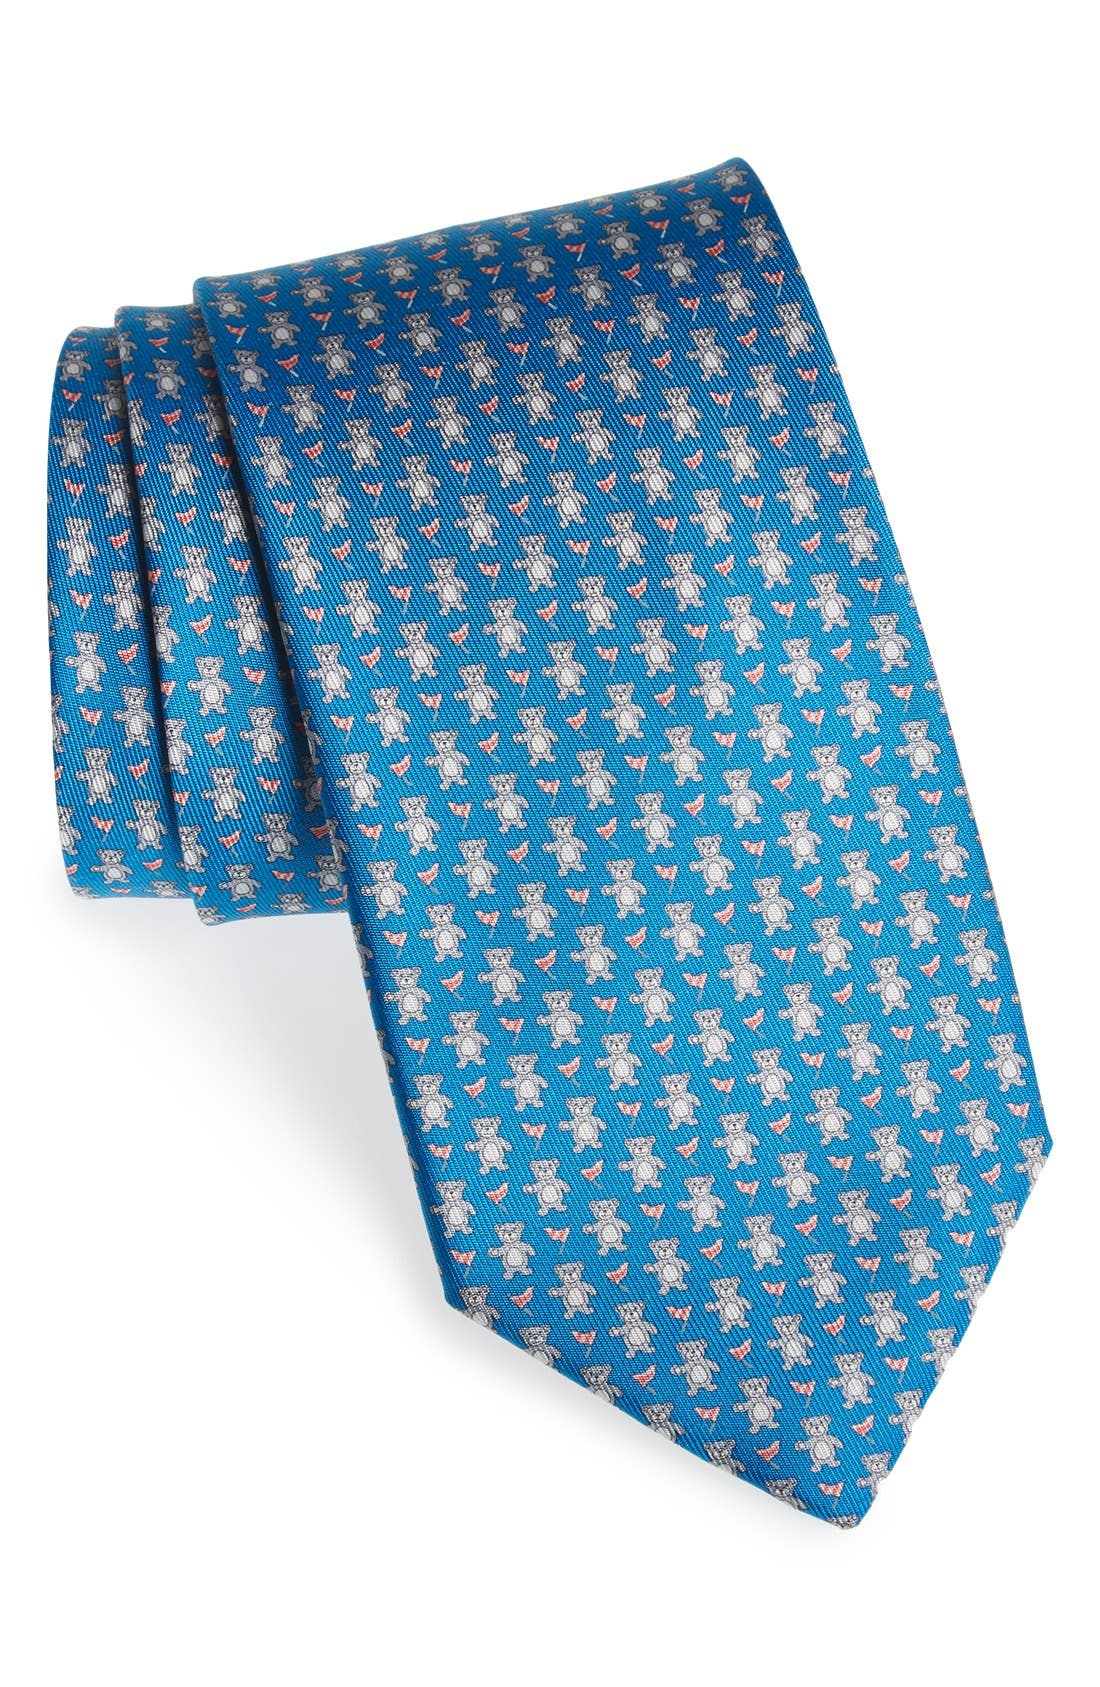 Bear Print Silk Tie,                             Main thumbnail 1, color,                             494